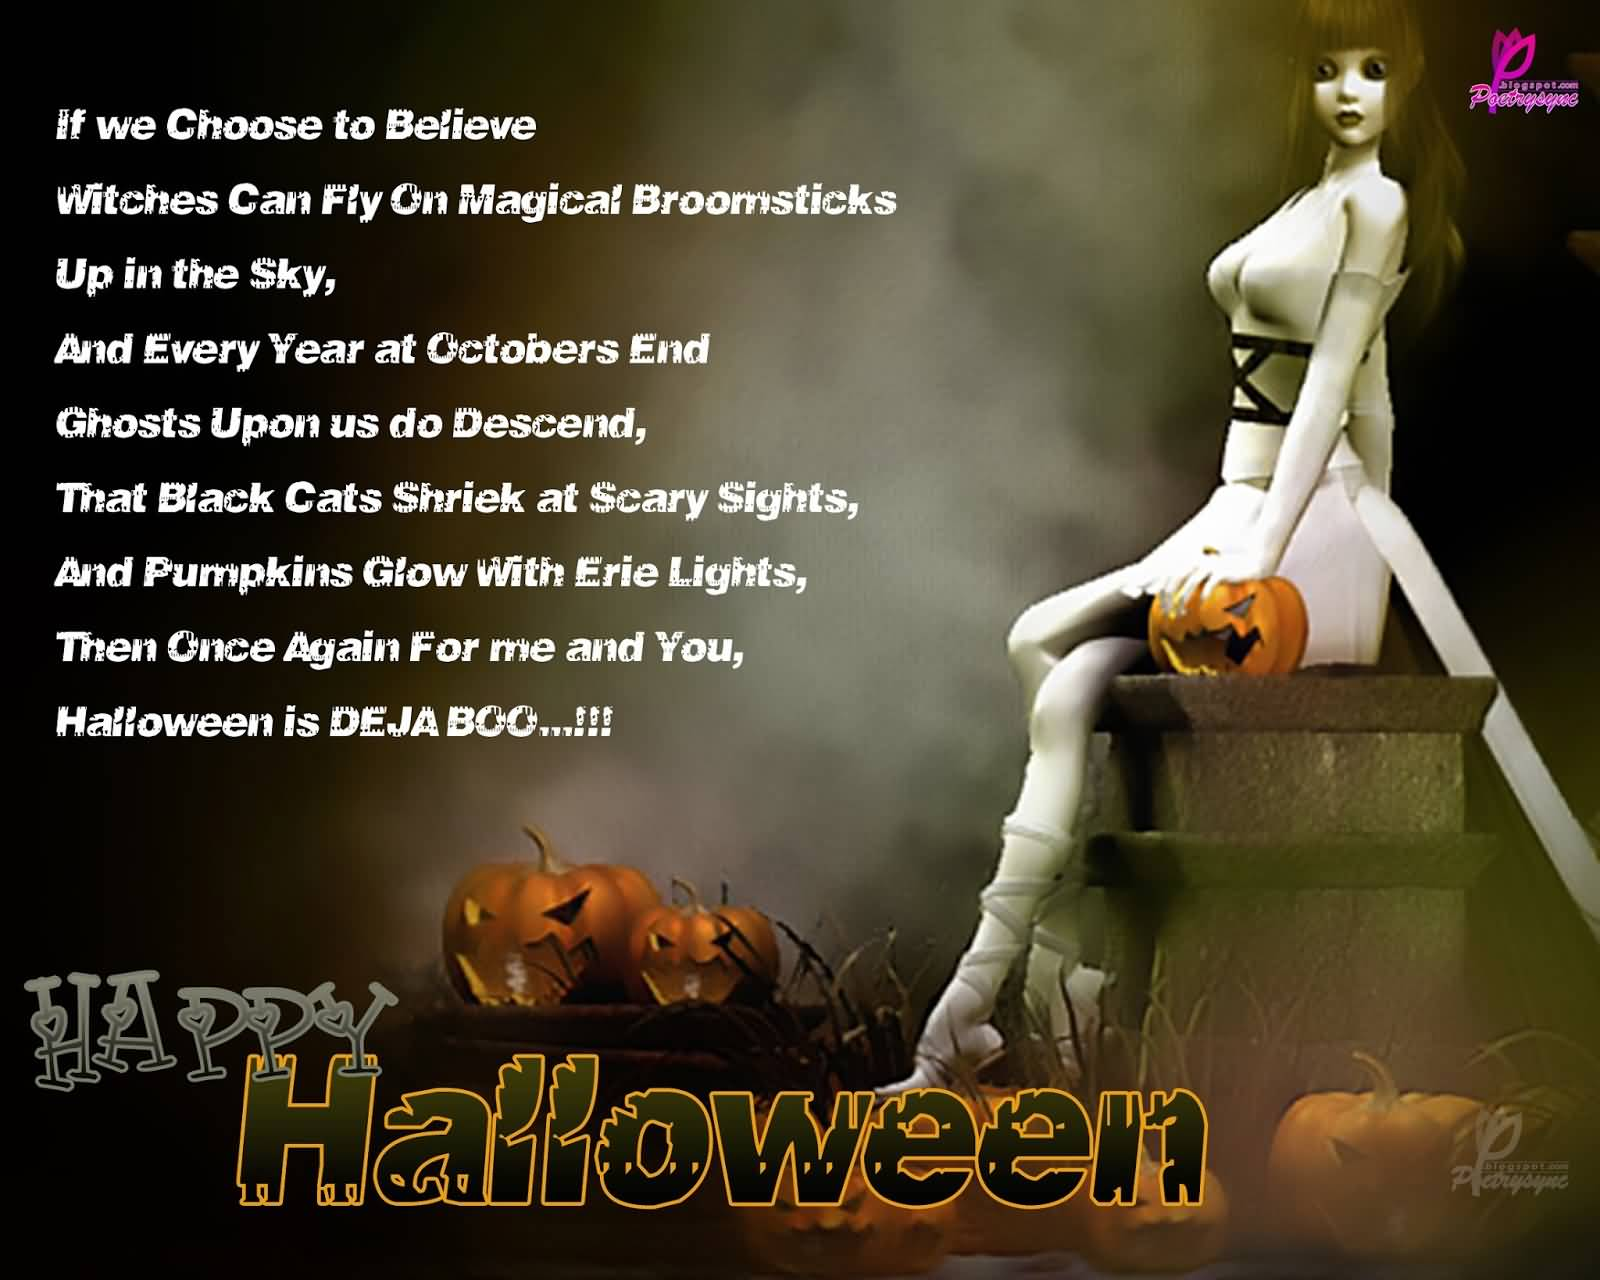 Charmant If We Choose To Believe Witches Can Fly On Magical Broomsticks Up In The  Sky Happy